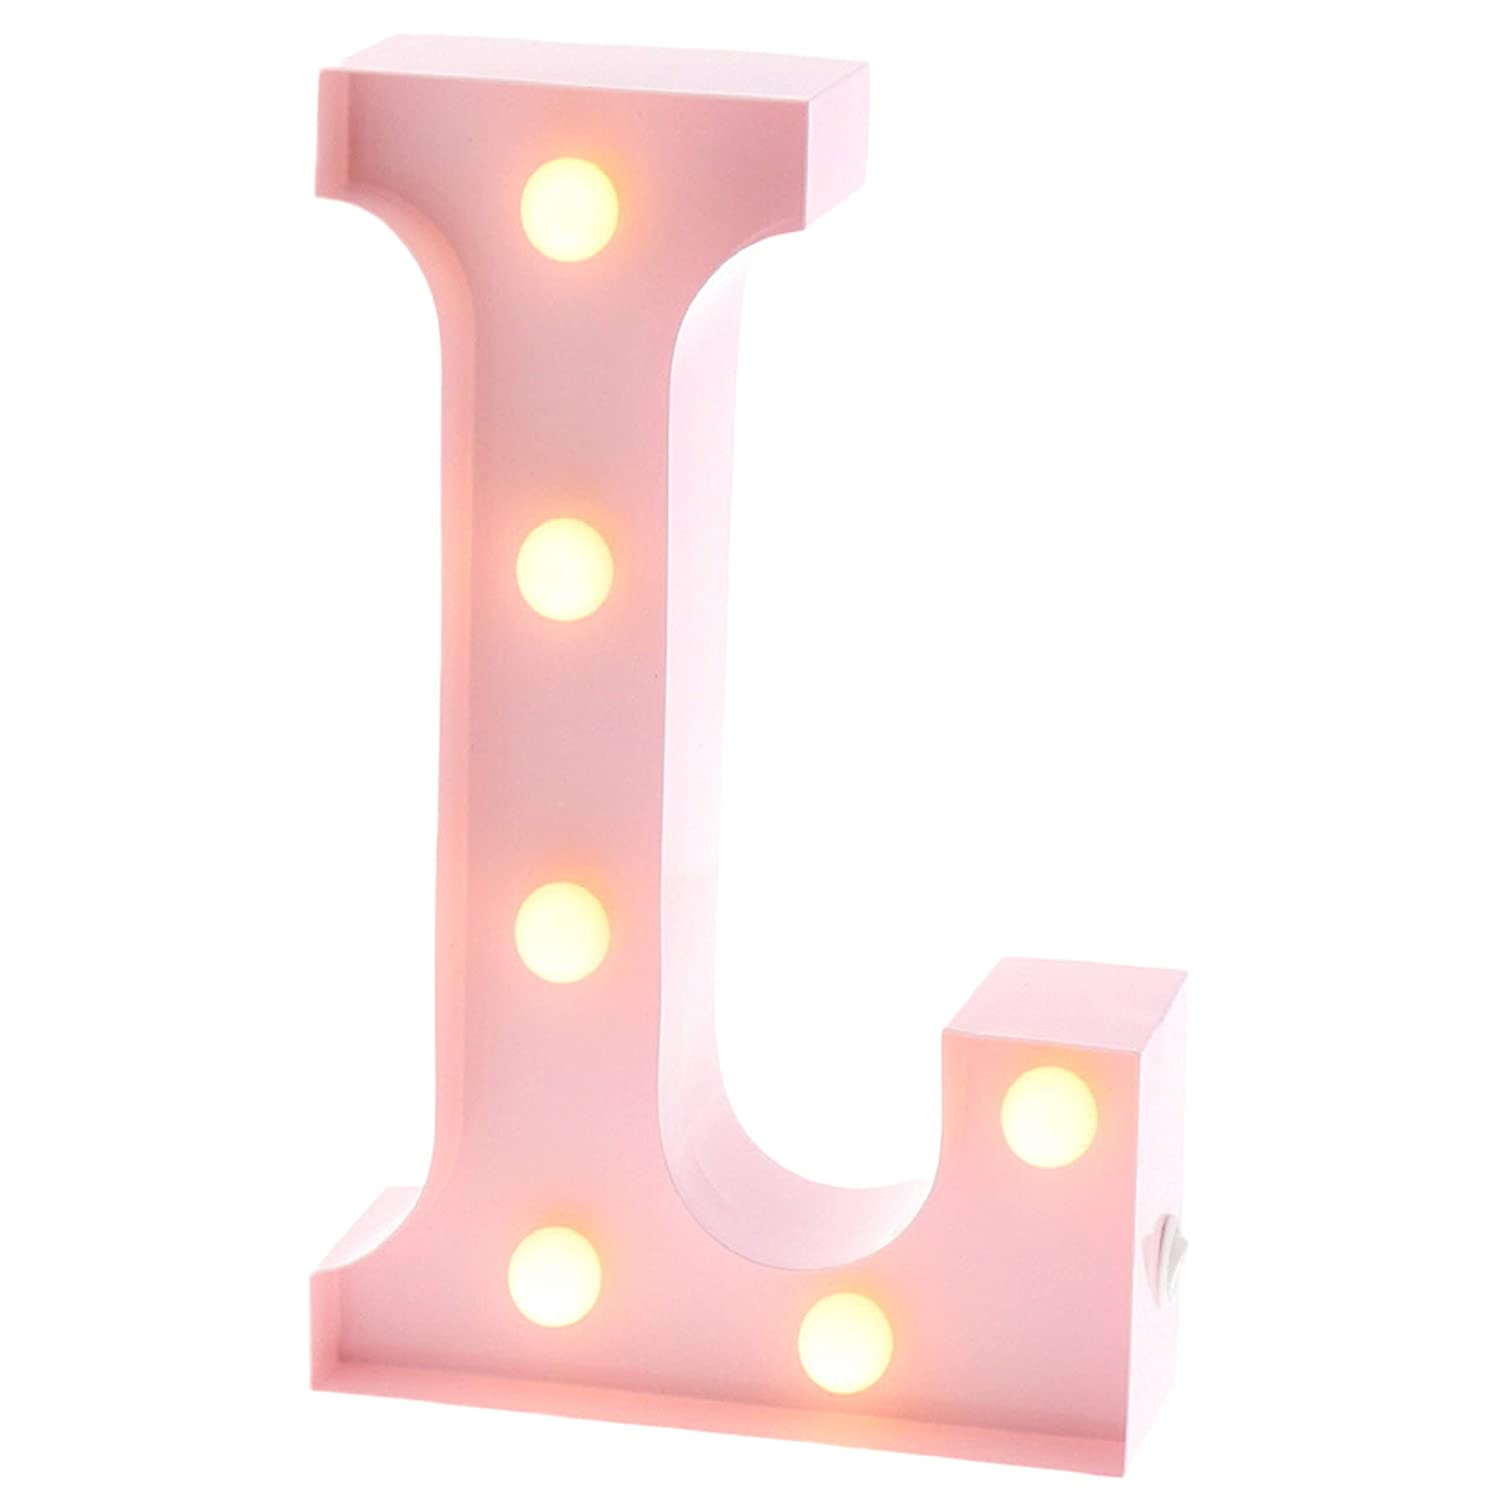 "Barnyard Designs Metal Marquee Letter L Light Up Wall Initial Nursery Letter, Home and Event Decoration 9"" (Baby Pink)"